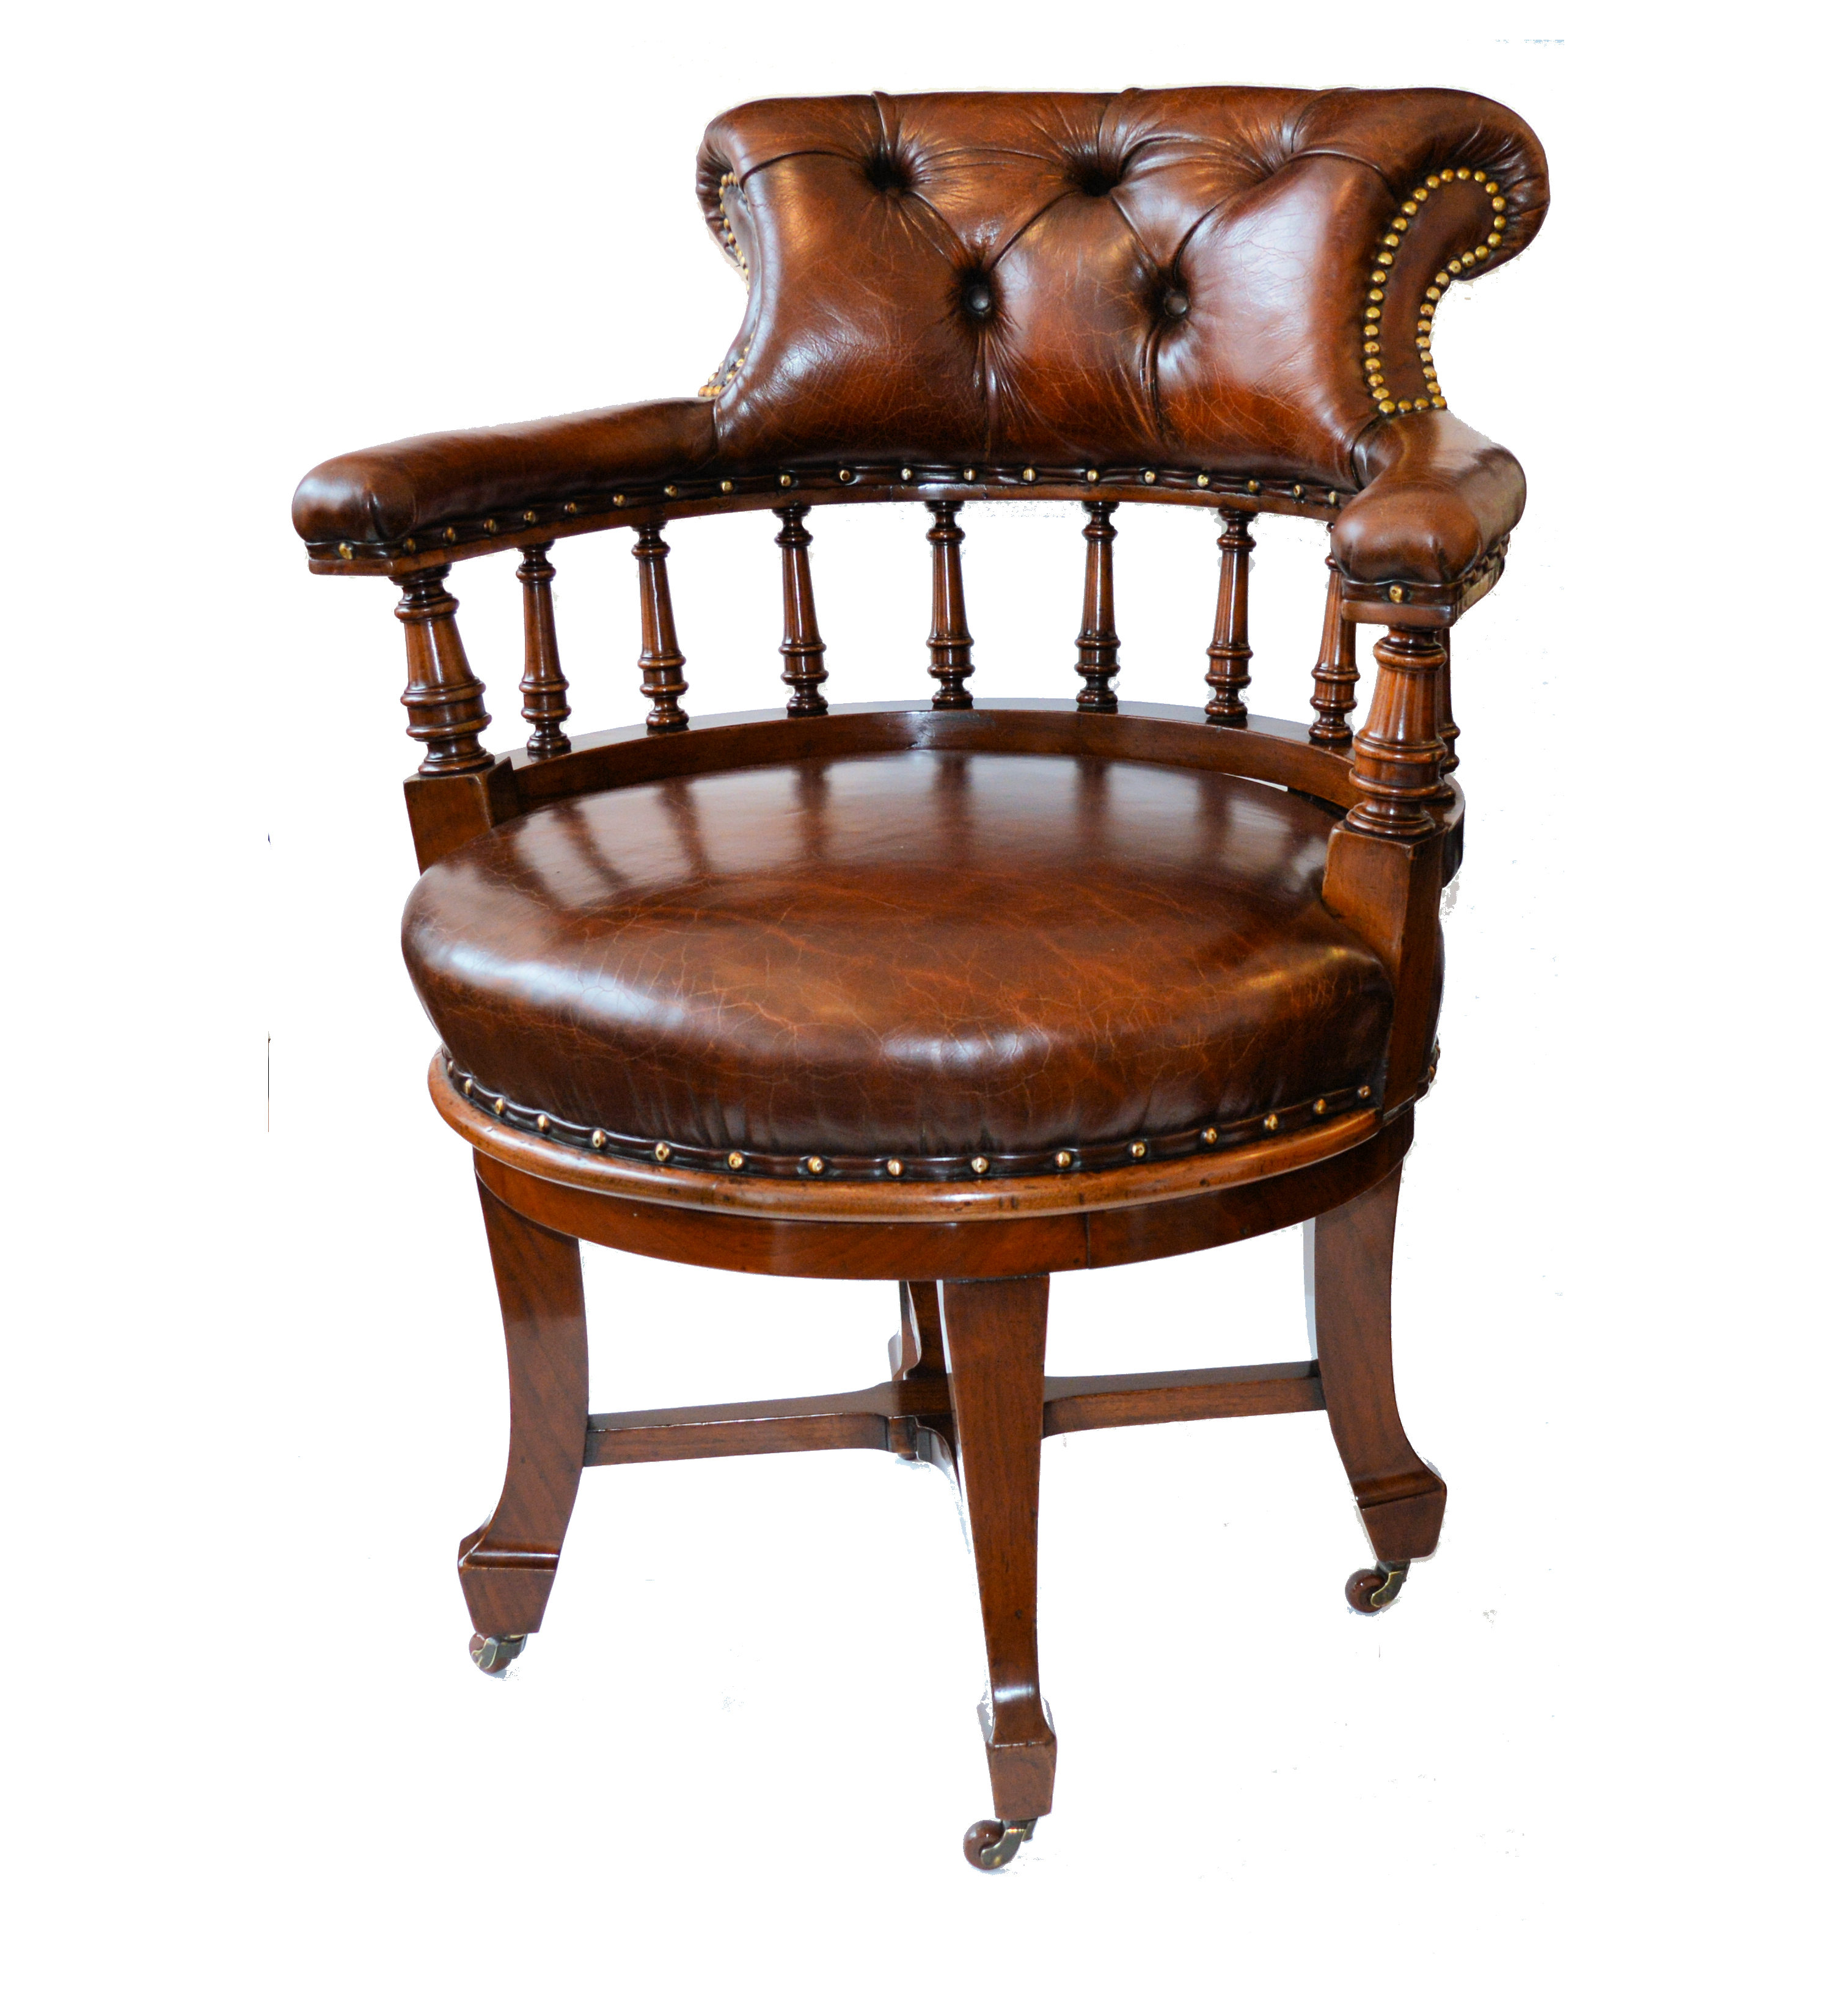 Prime Antique Leather Covered Revolving Mahogany Desk Chair Beatyapartments Chair Design Images Beatyapartmentscom